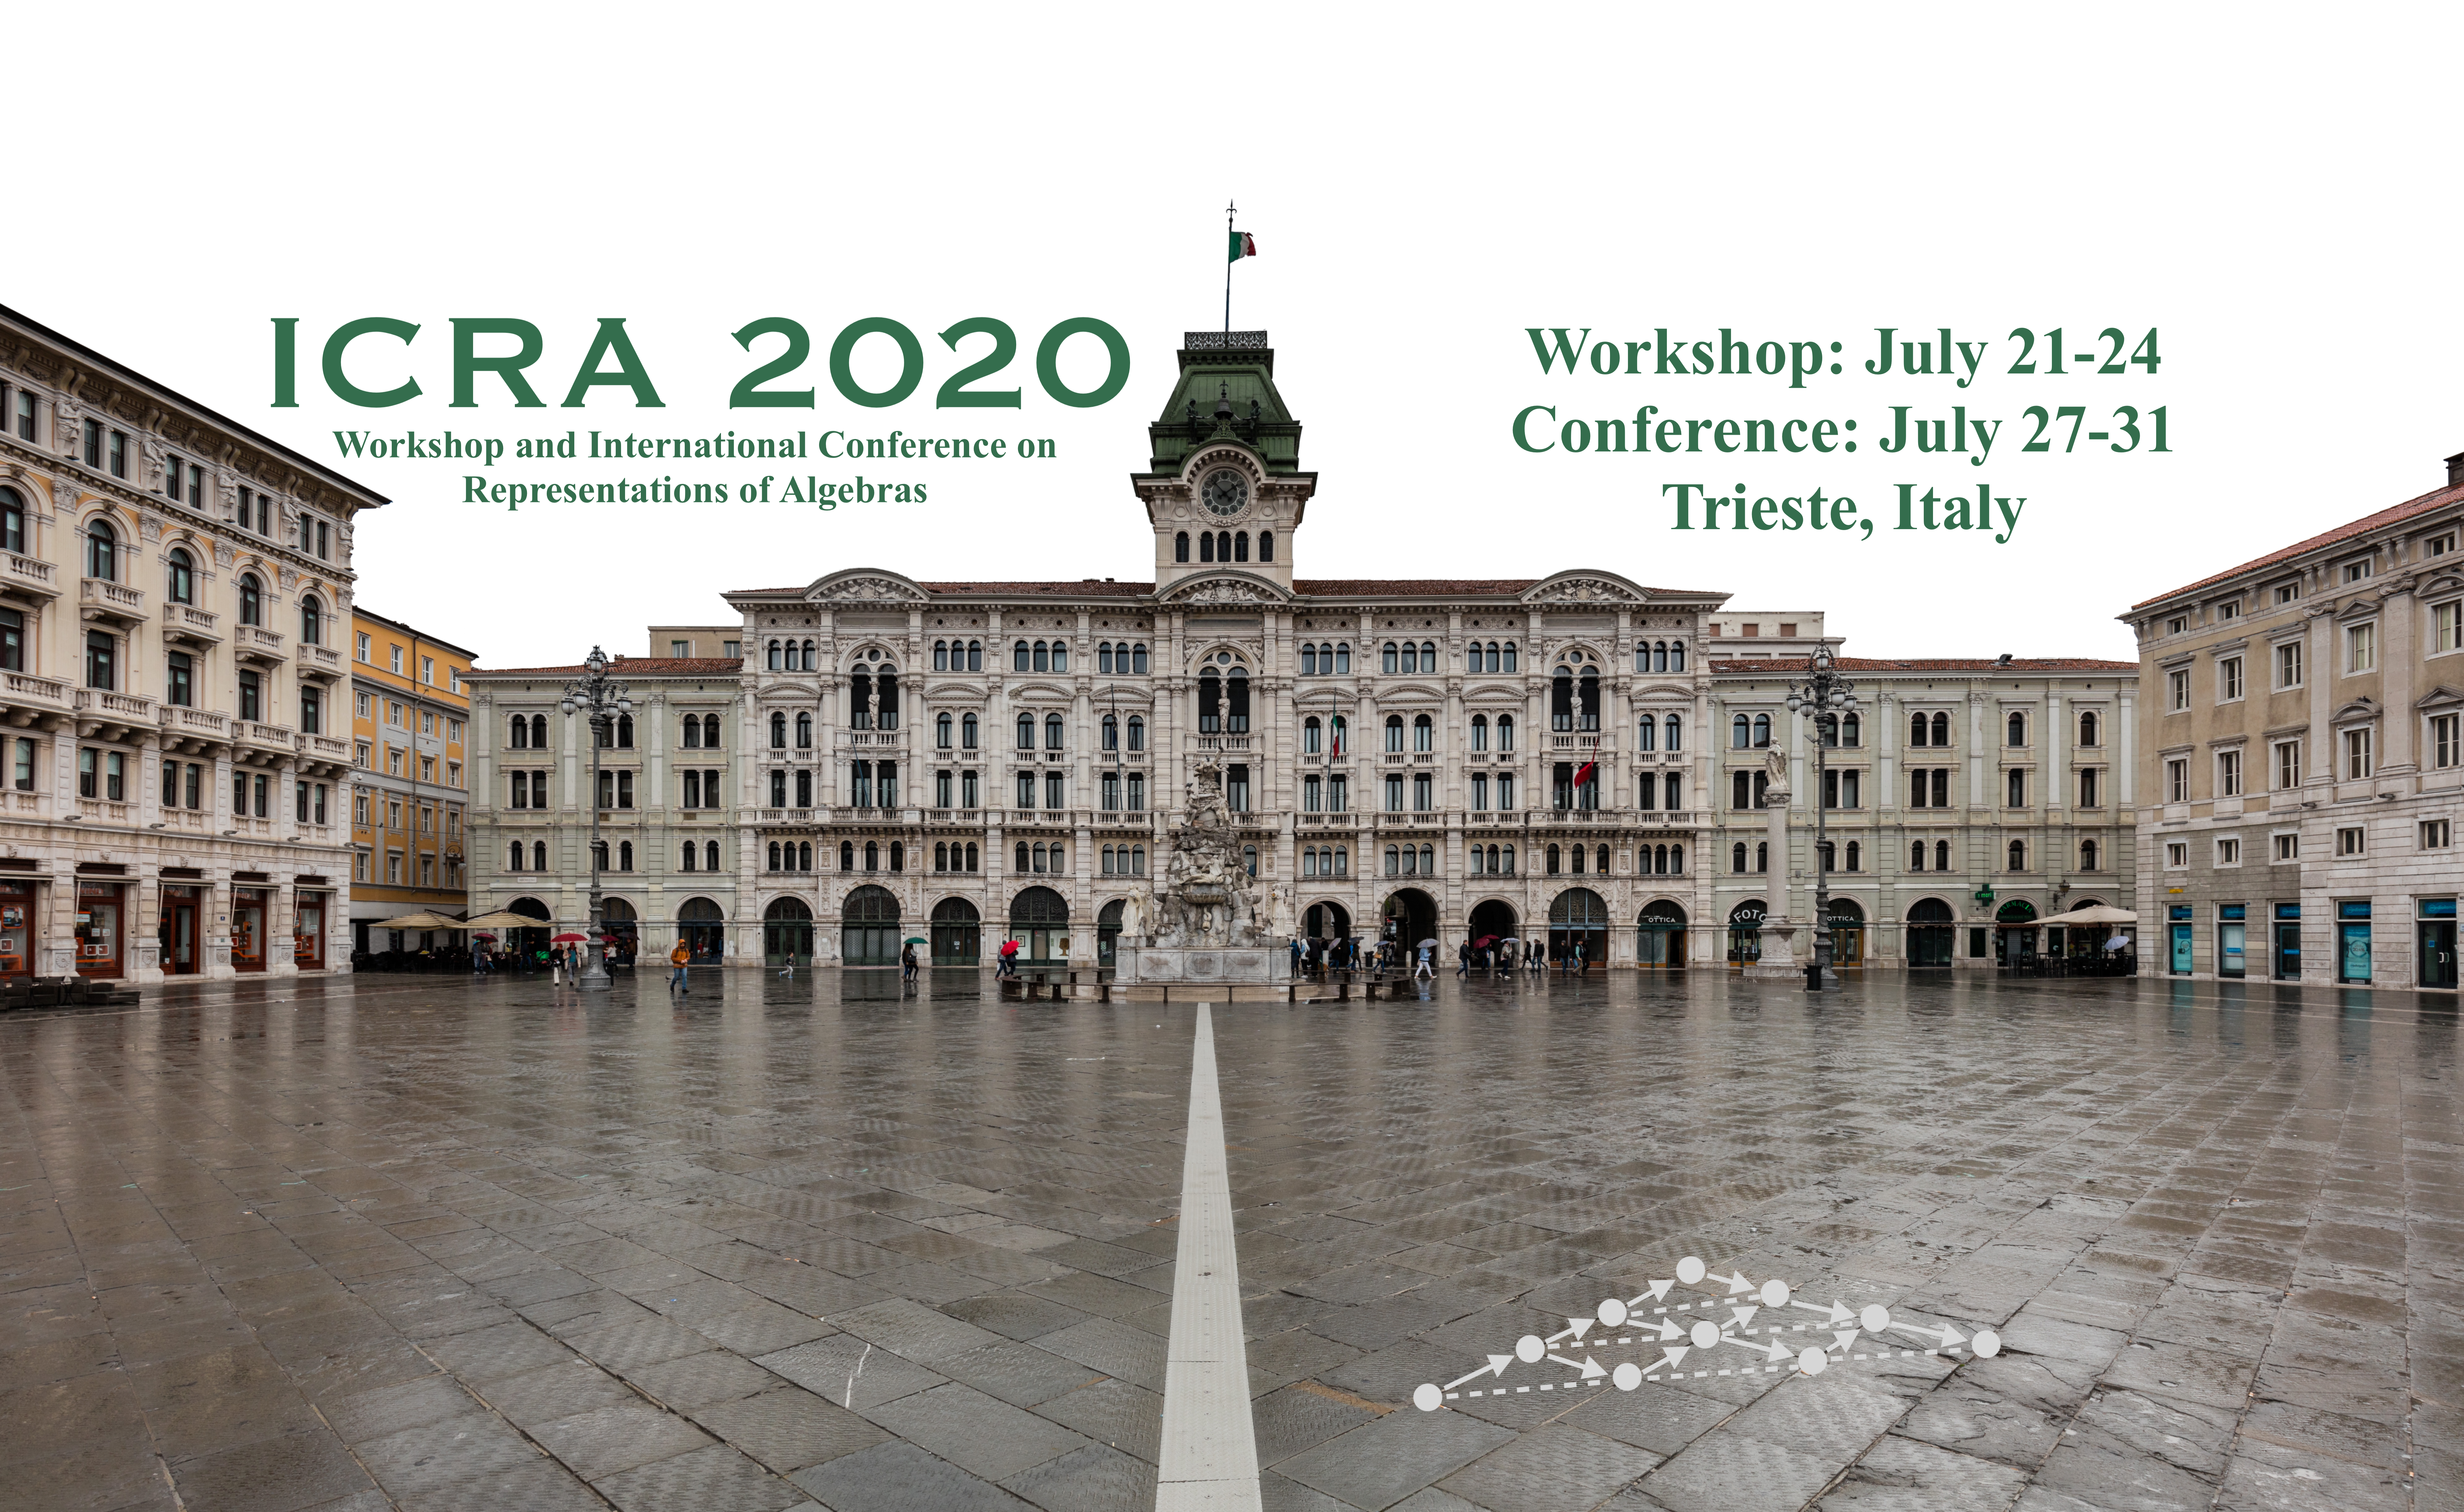 icra2020:icra2020_banner.png